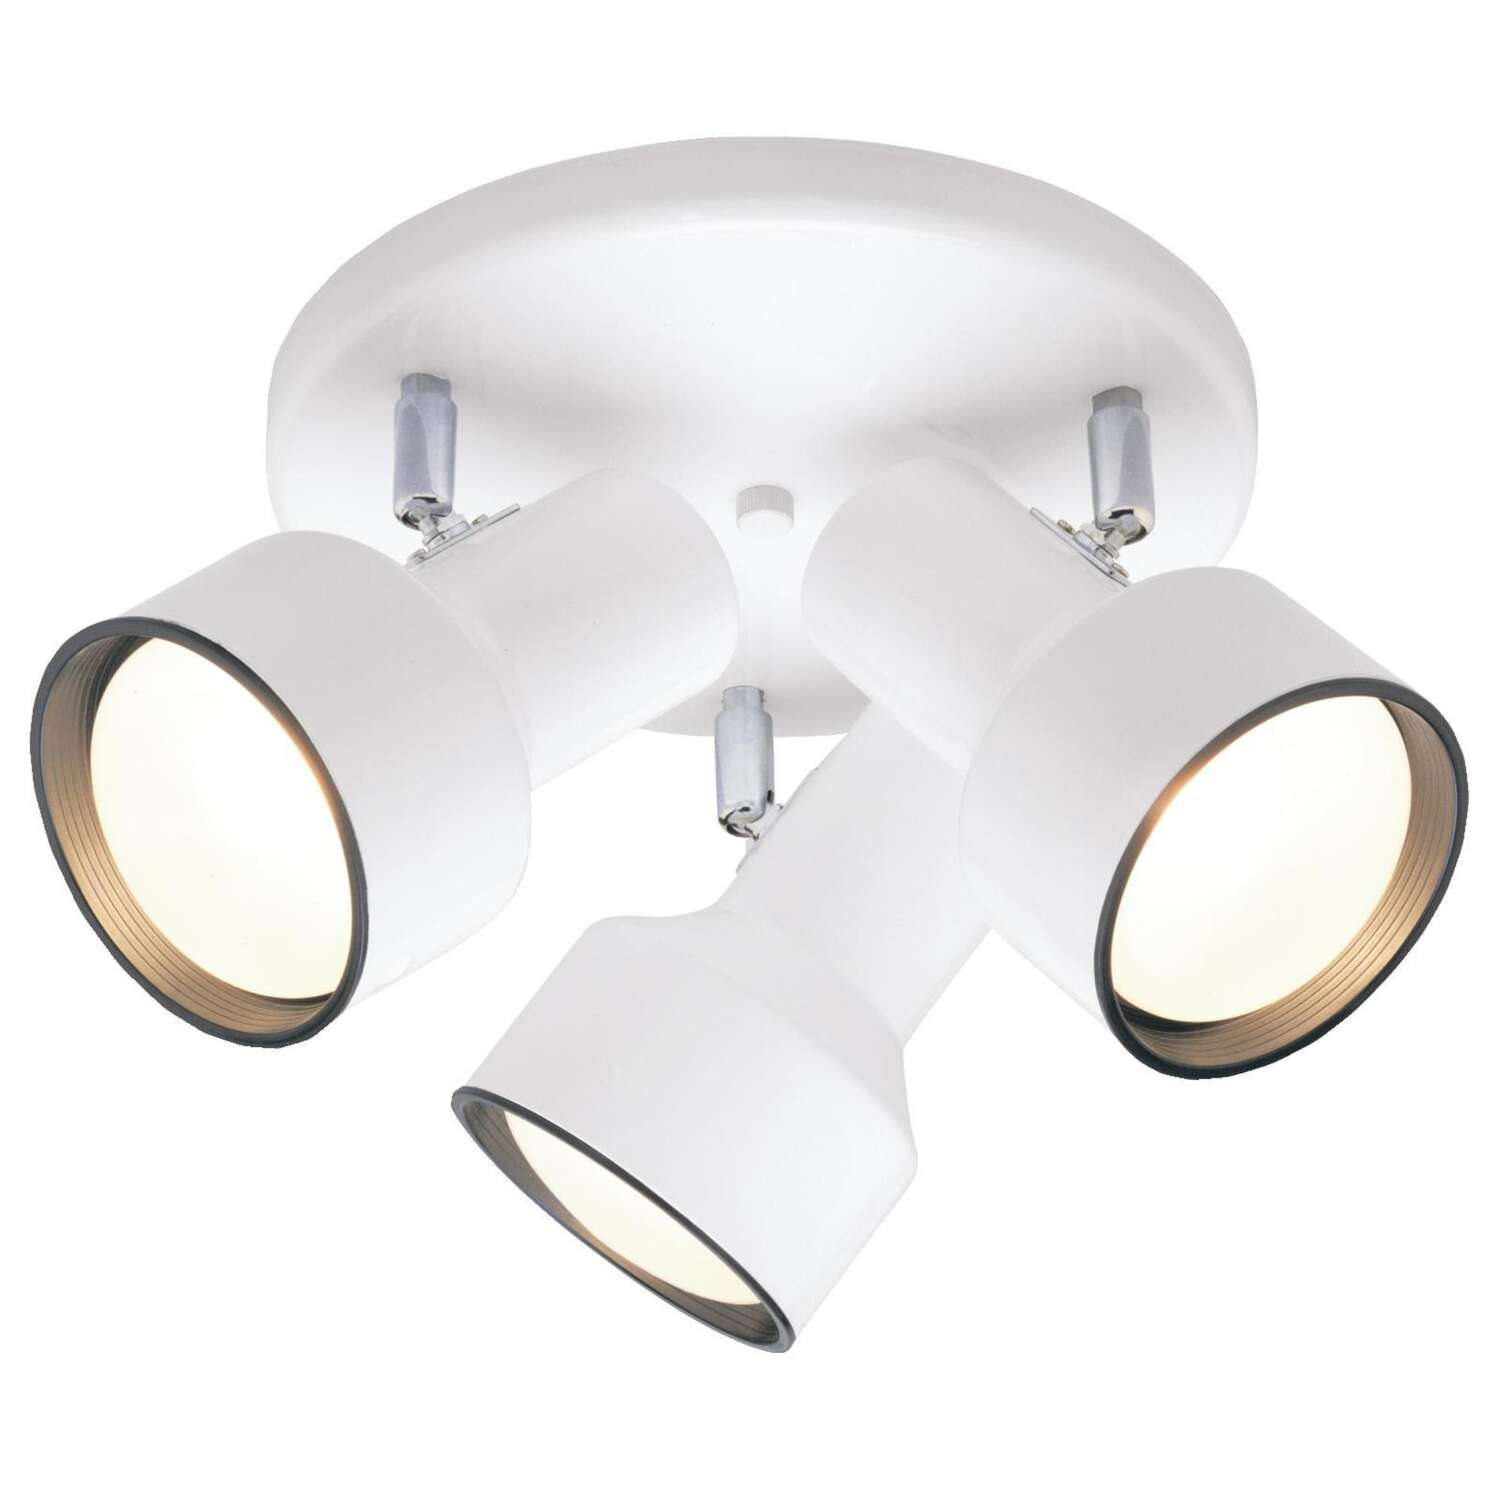 Westinghouse 8-1/4 in. H x 10-1/8 in. W x 10-3/16 in. L Ceiling Light